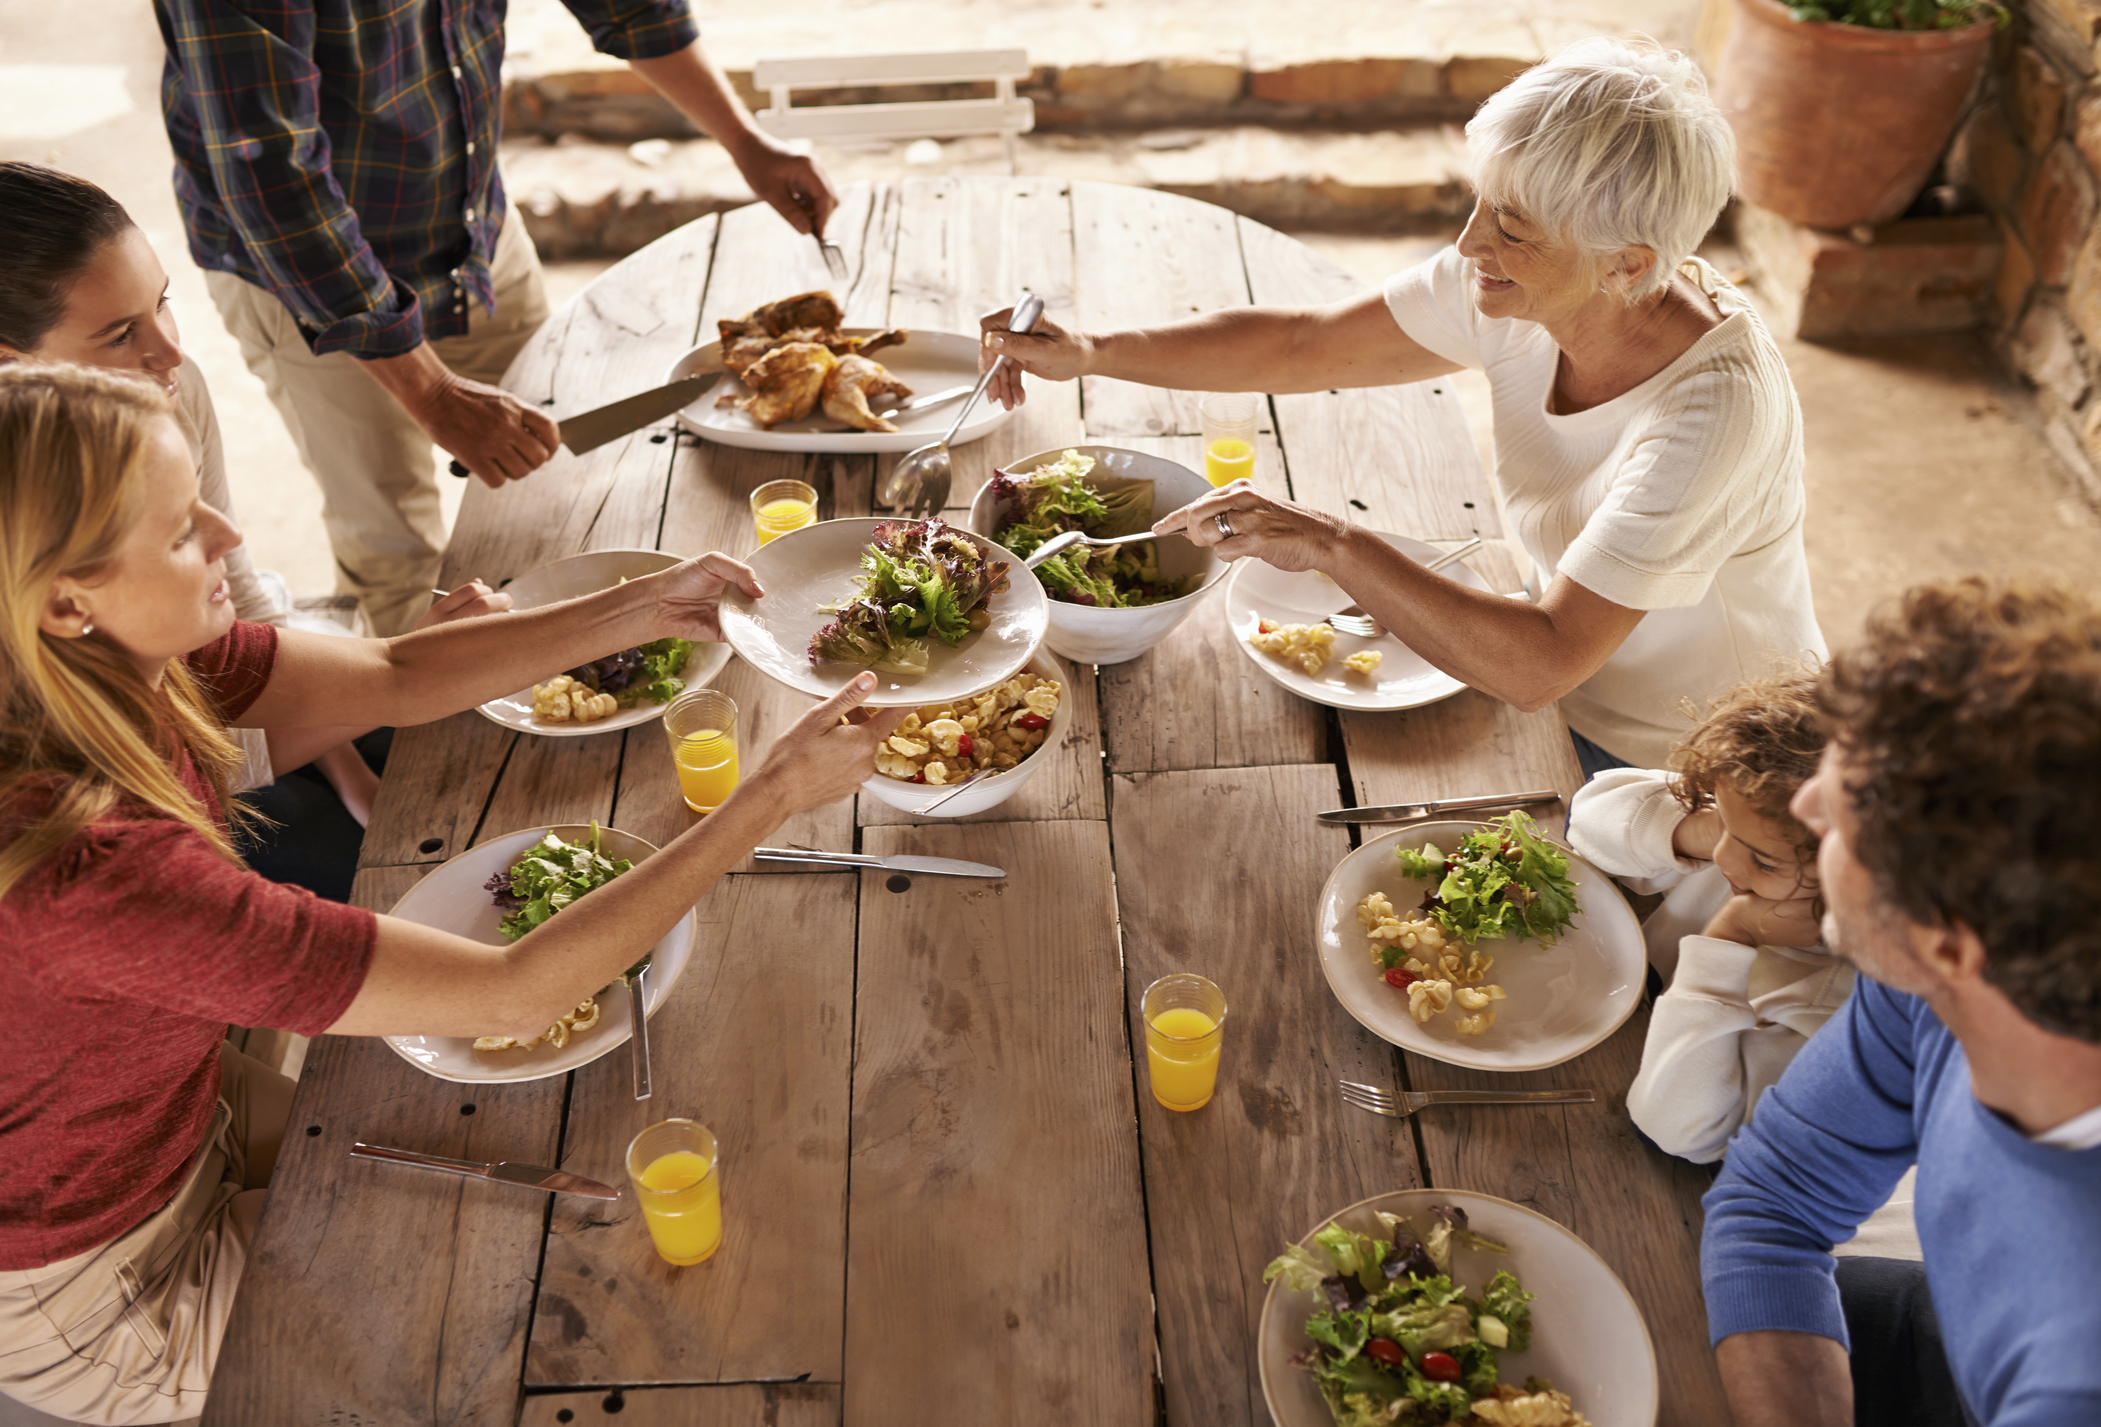 Travel Tips: Where to Camp for Thanksgiving